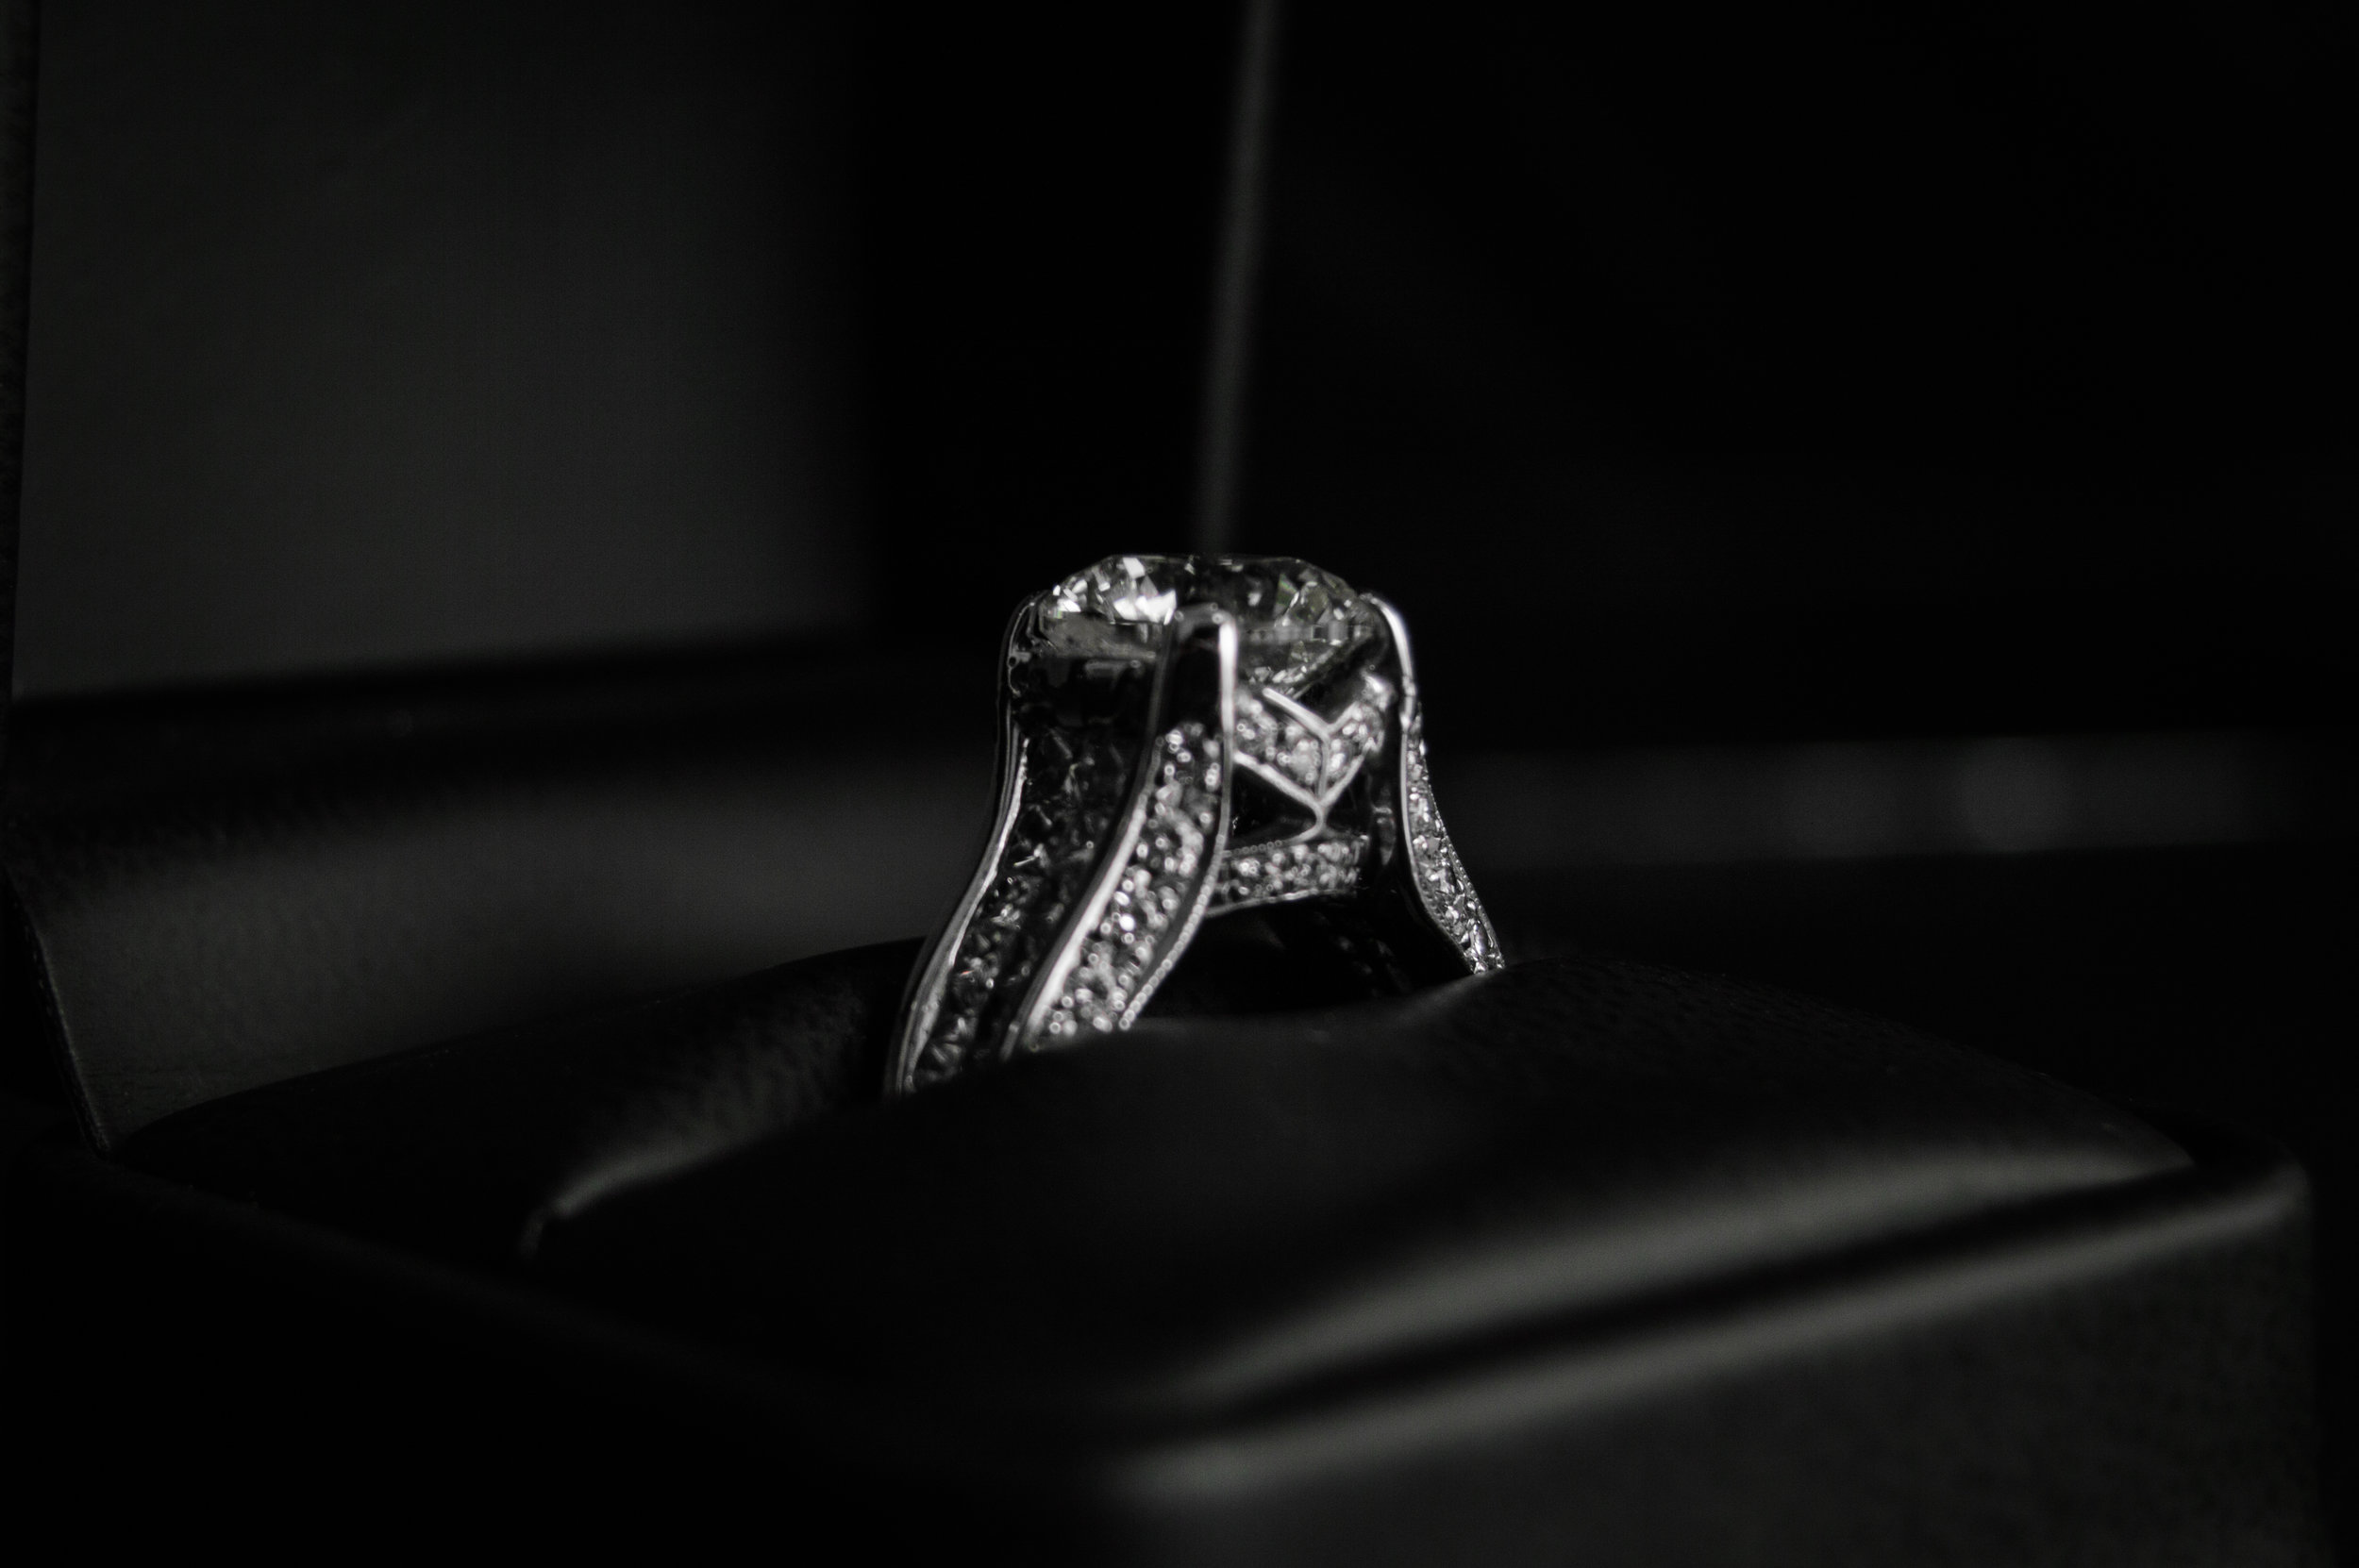 Jewelry Maintenance - Florida Diamond Center can help you extend the life of your current jewelry with our expert care jewelry maintenance services. Prevent the loss of diamonds, fading of colors and extend the life of your jewelry by maintaining it on a regular schedule. Professional cleaning and polishing available alongside all jewelry maintenance requirements.